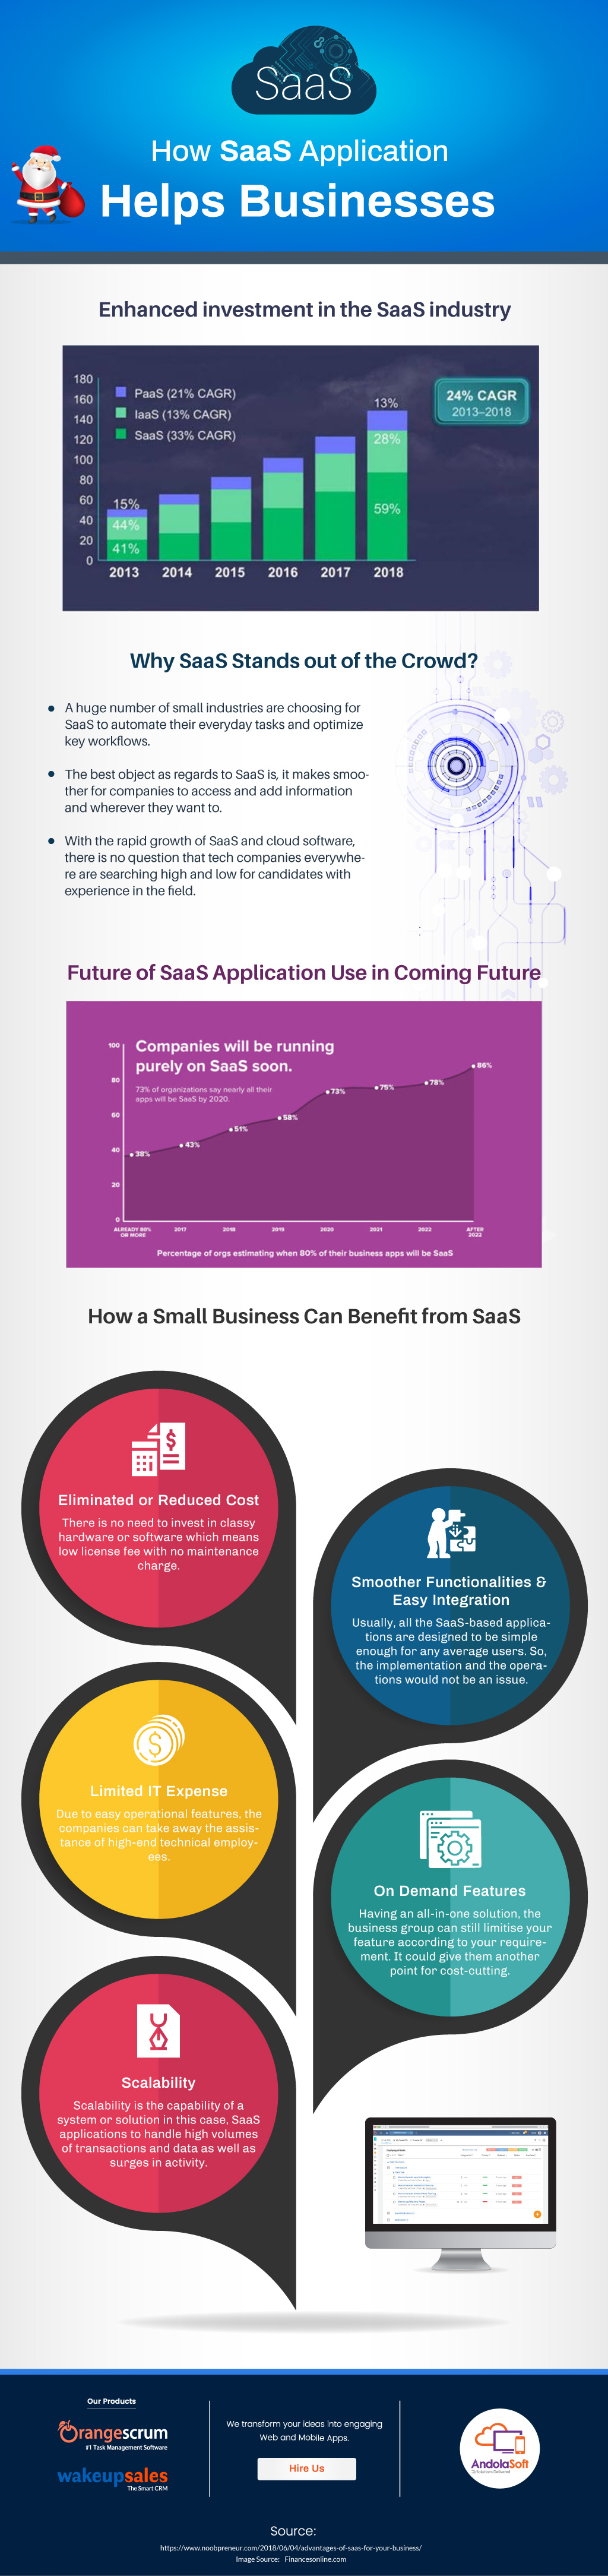 How SaaS Application Helps Businesses - InfoGraphic View